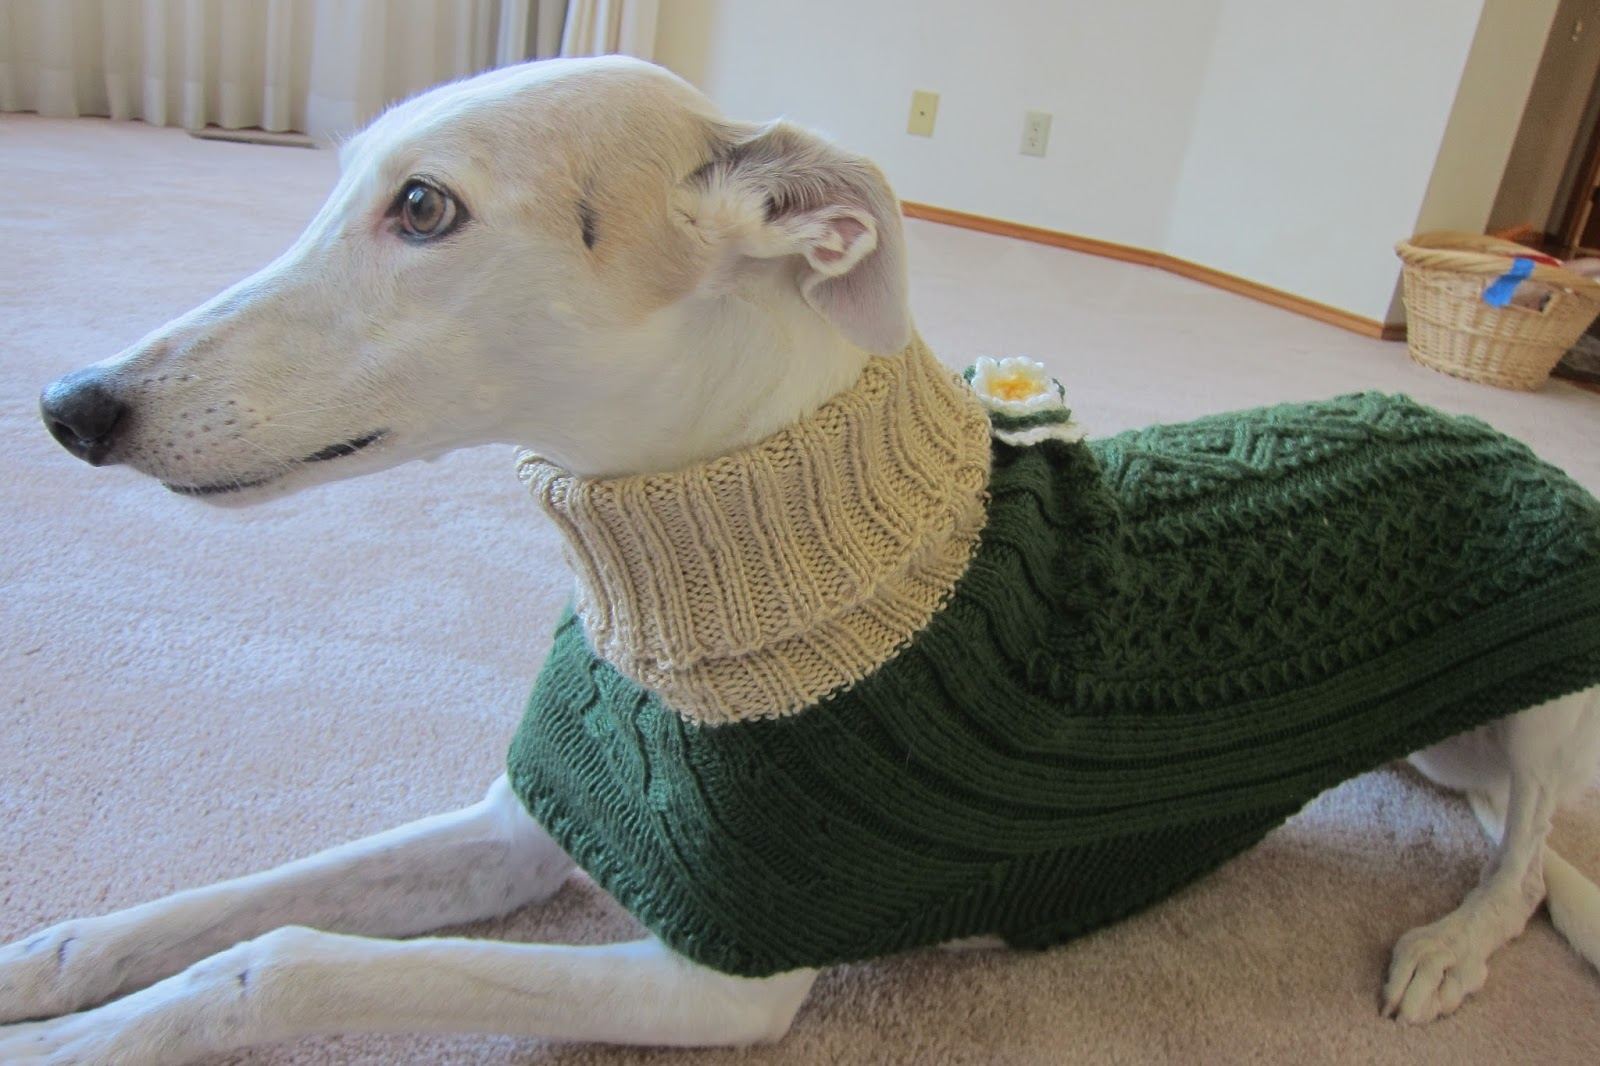 Knitting Patterns For Greyhound Sweaters : Greyhound Knit Sweaters: Green coat for a girl dog